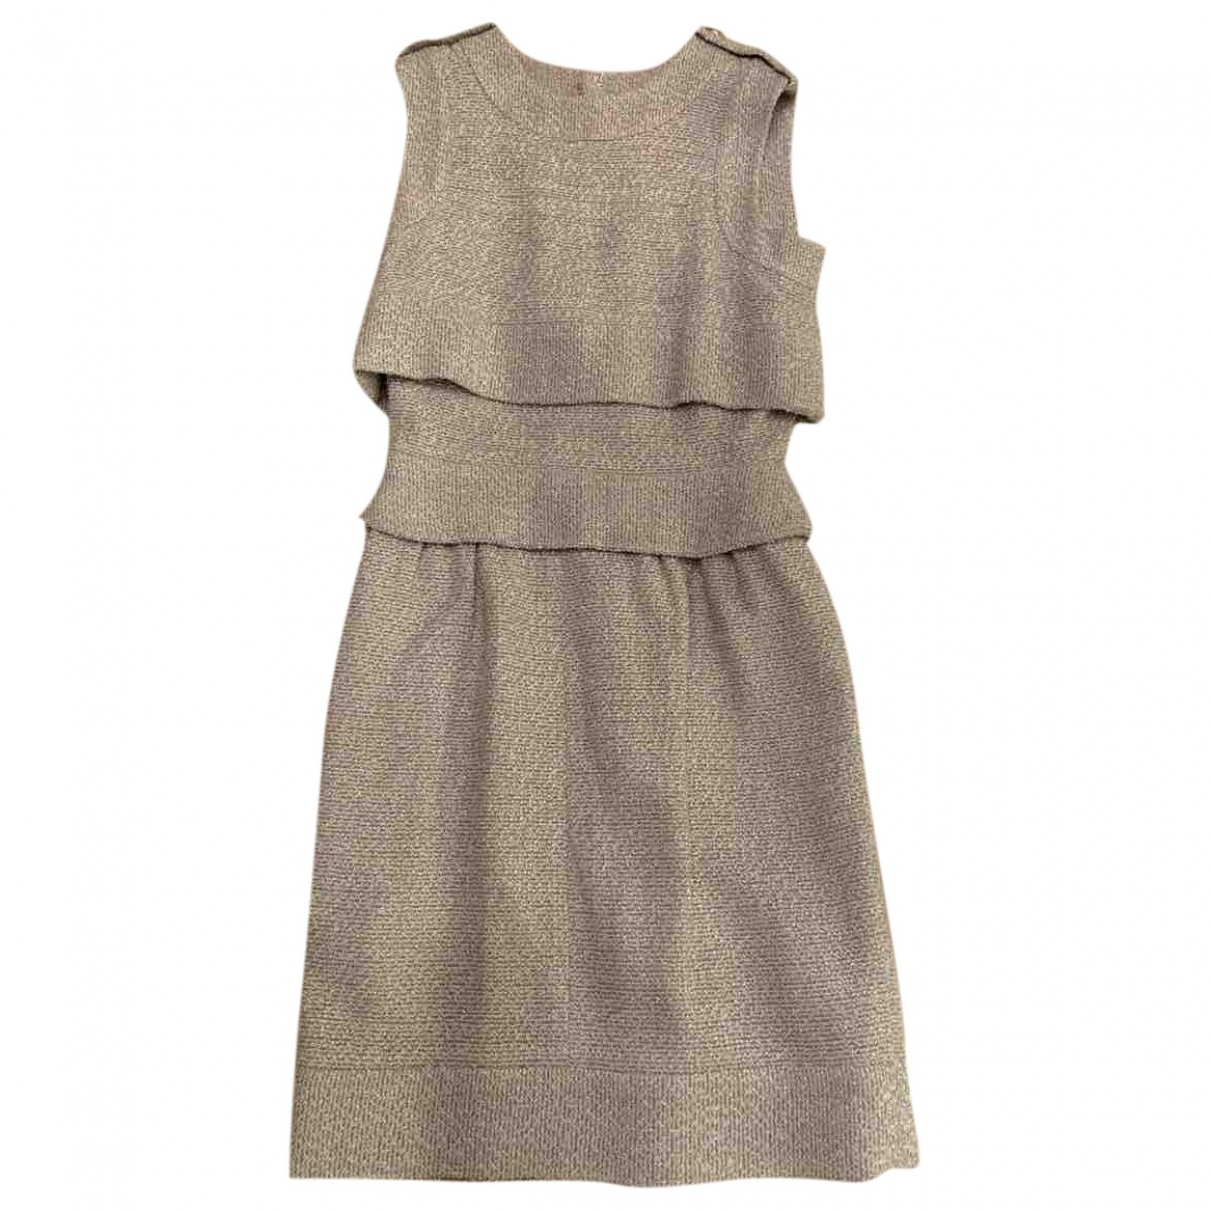 Chanel \N Kleid in  Grau Viskose